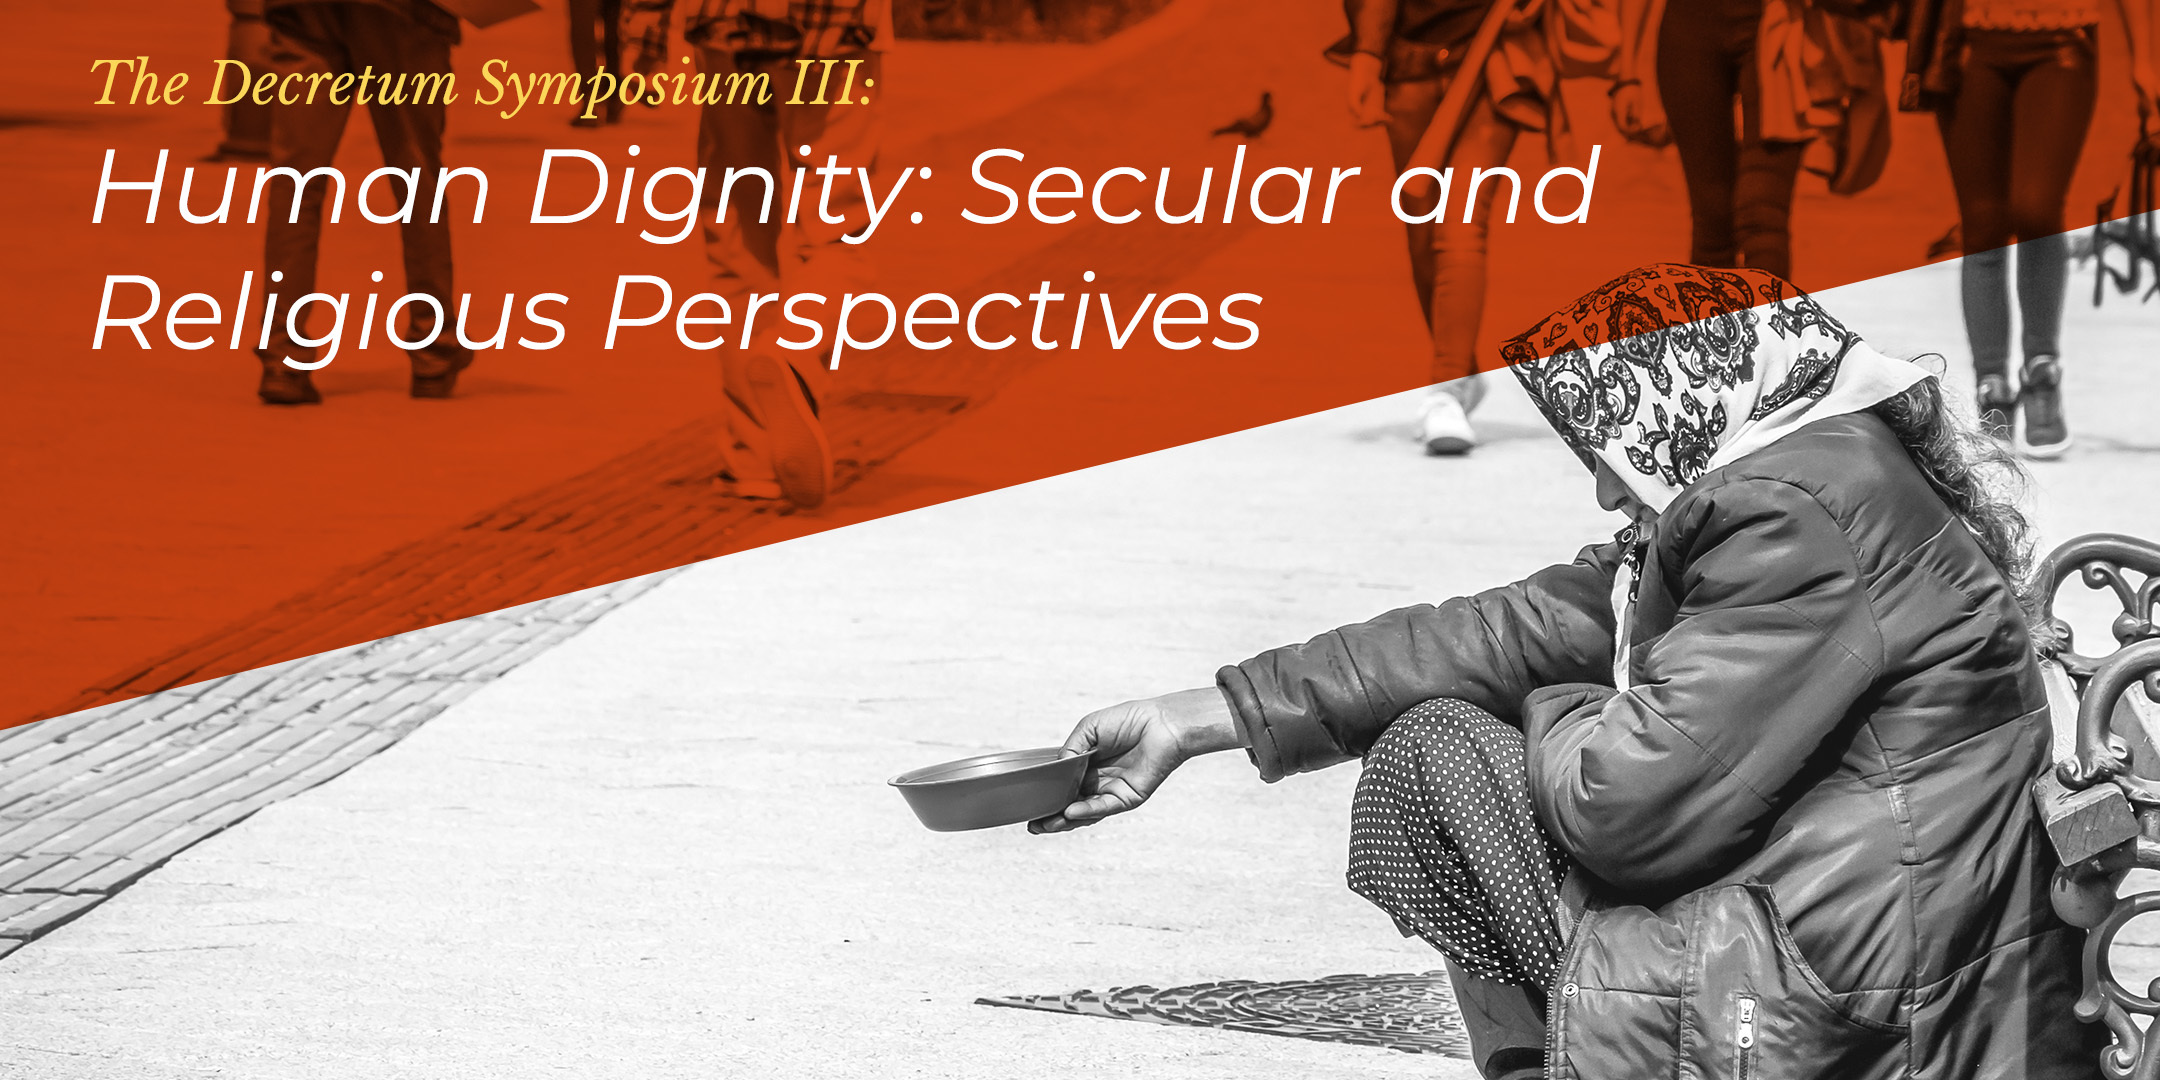 Decretum Symposium III - Human Dignity: Secular and Religious Perspectives